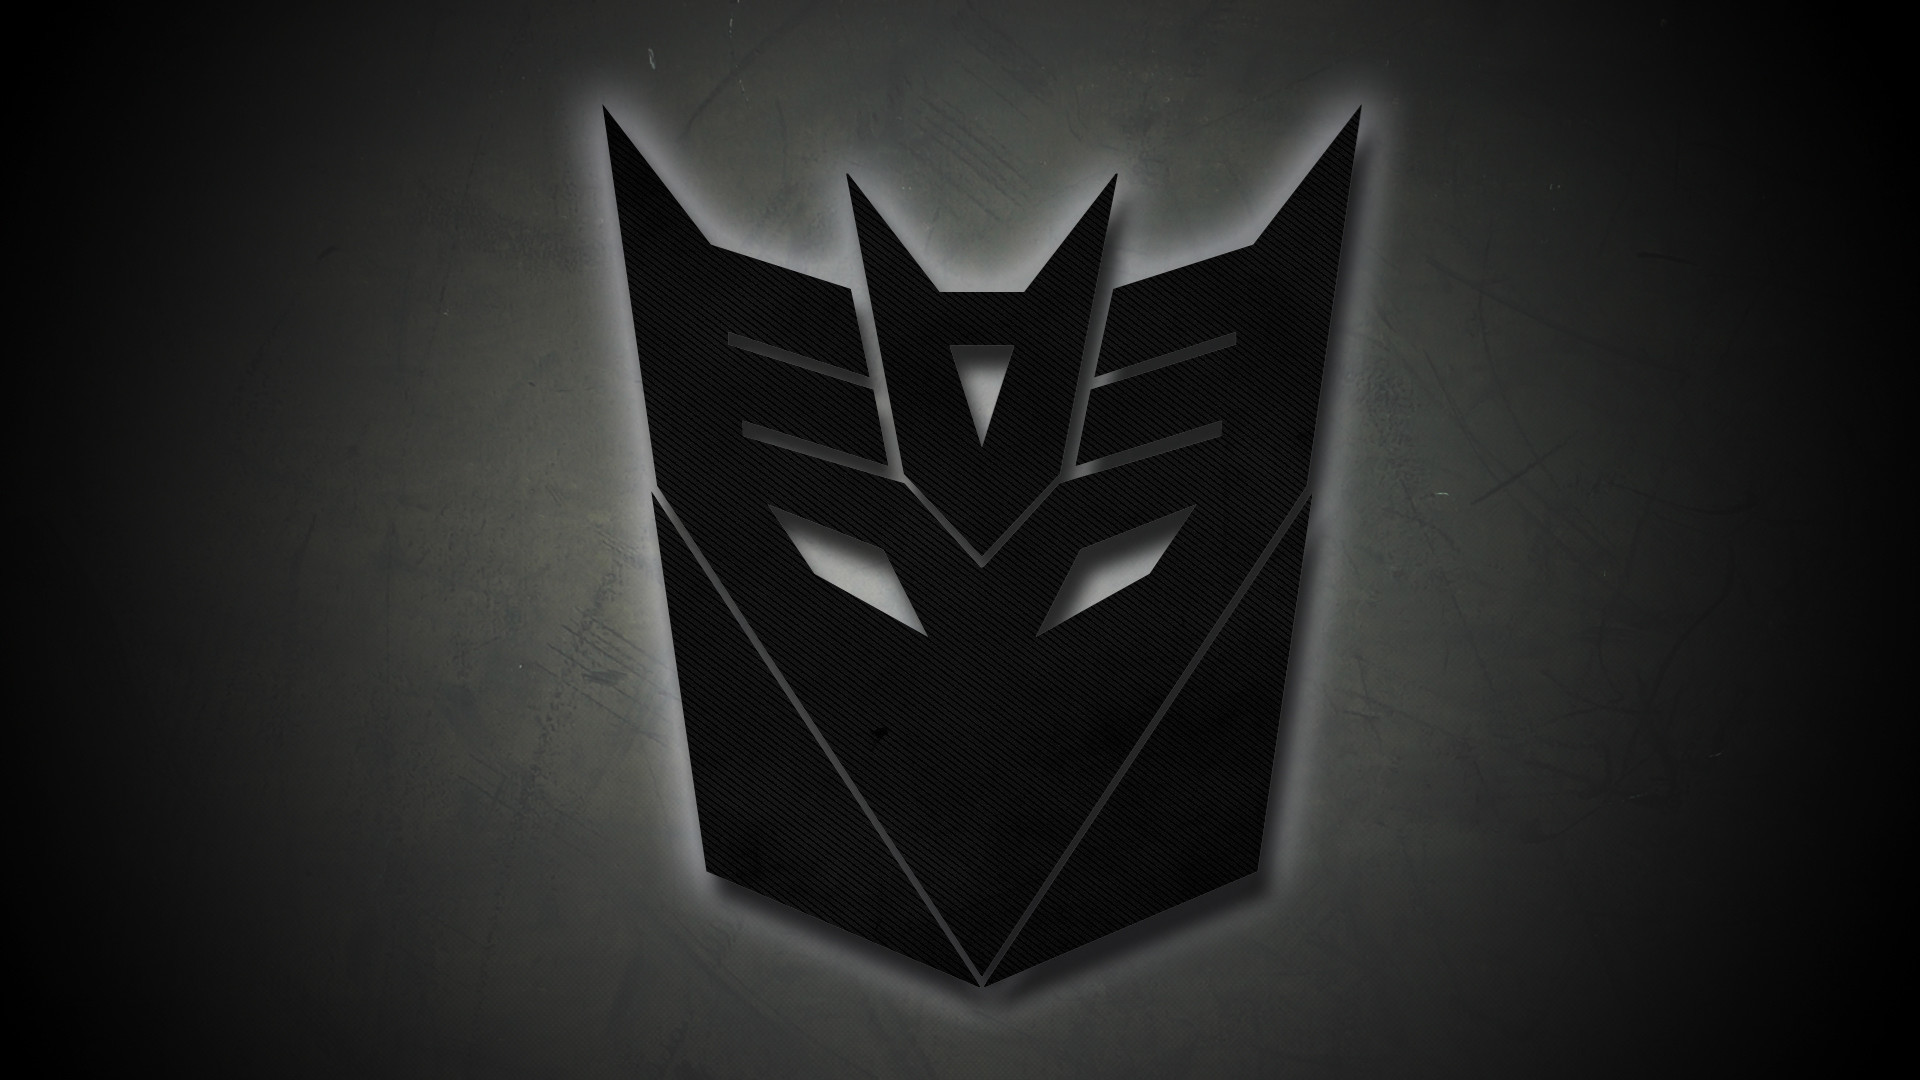 1920x1080 Decepticons Logo Wallpapers - Wallpaper Cave .